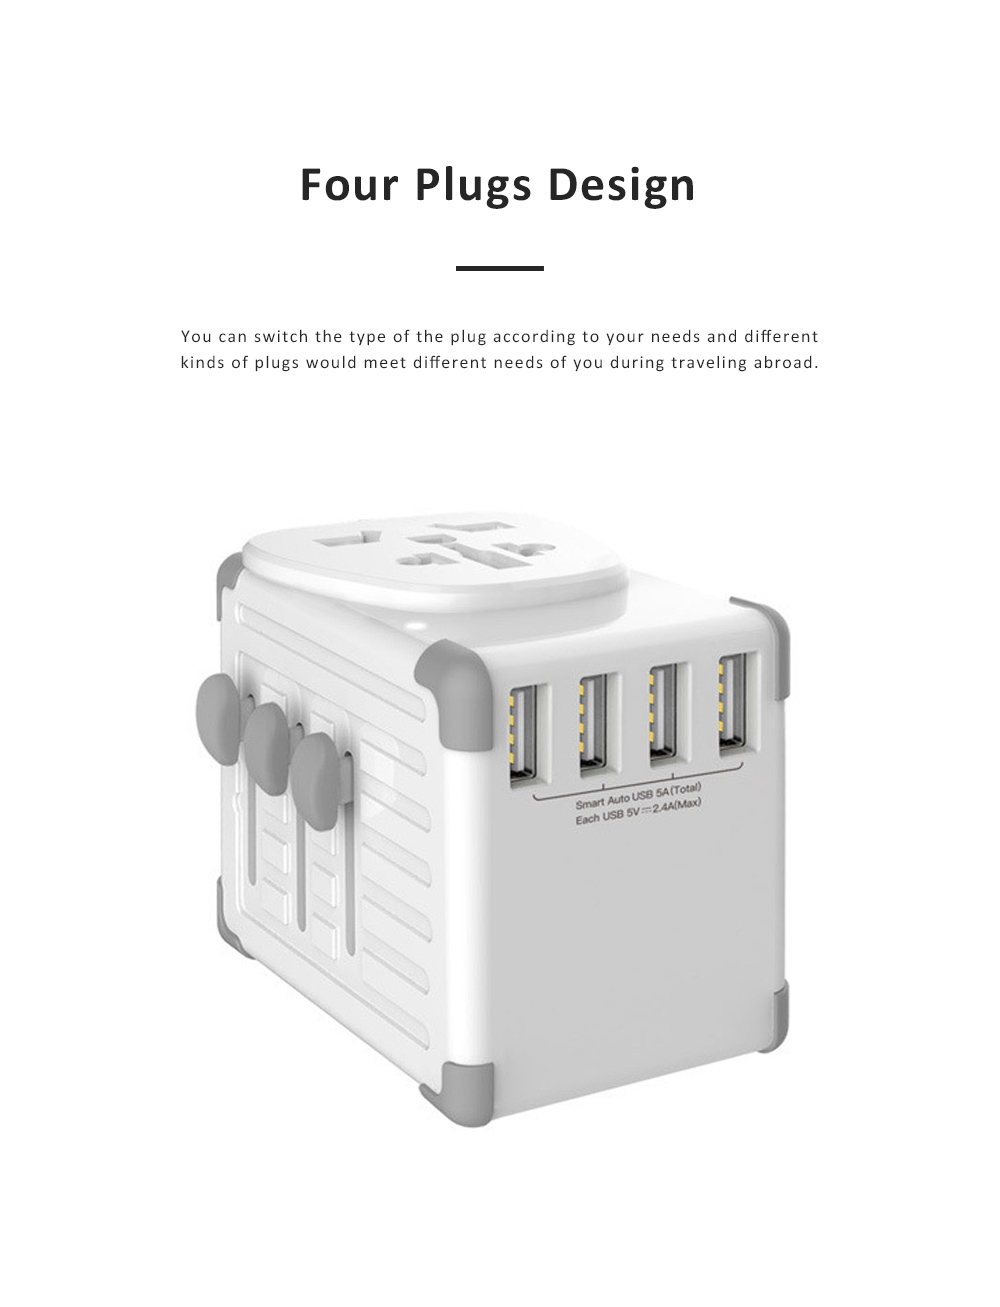 Portable Multifunctional Universal Adaptor Charge-over Plug Travel Abroad Phone Electronic Equipments Charger with 4 USB Ports 1